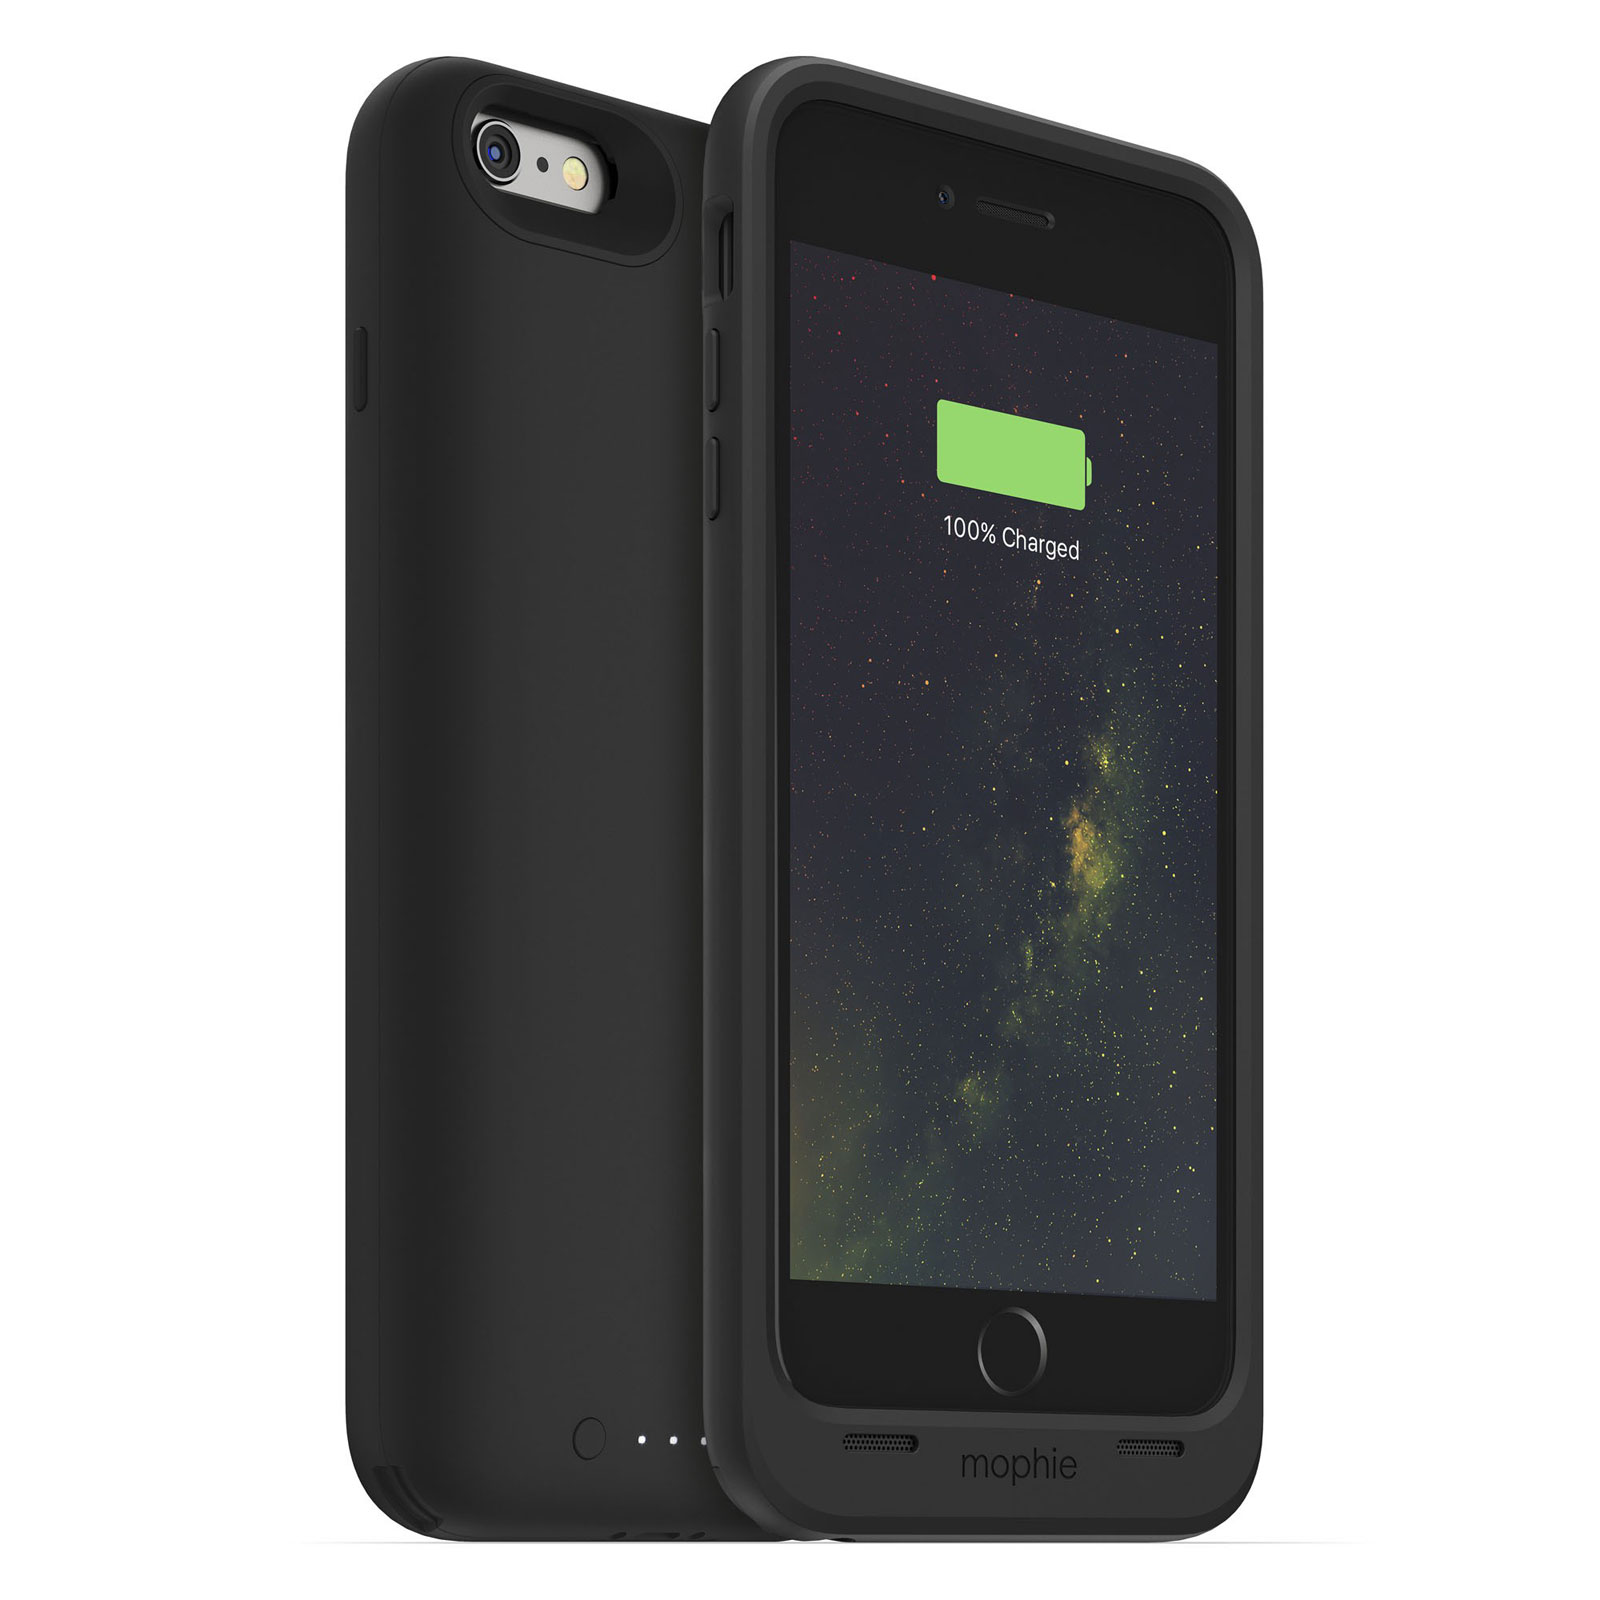 mophie juice pack wireless charging base noir iphone 6 plus 6s plus etui t l phone mophie. Black Bedroom Furniture Sets. Home Design Ideas